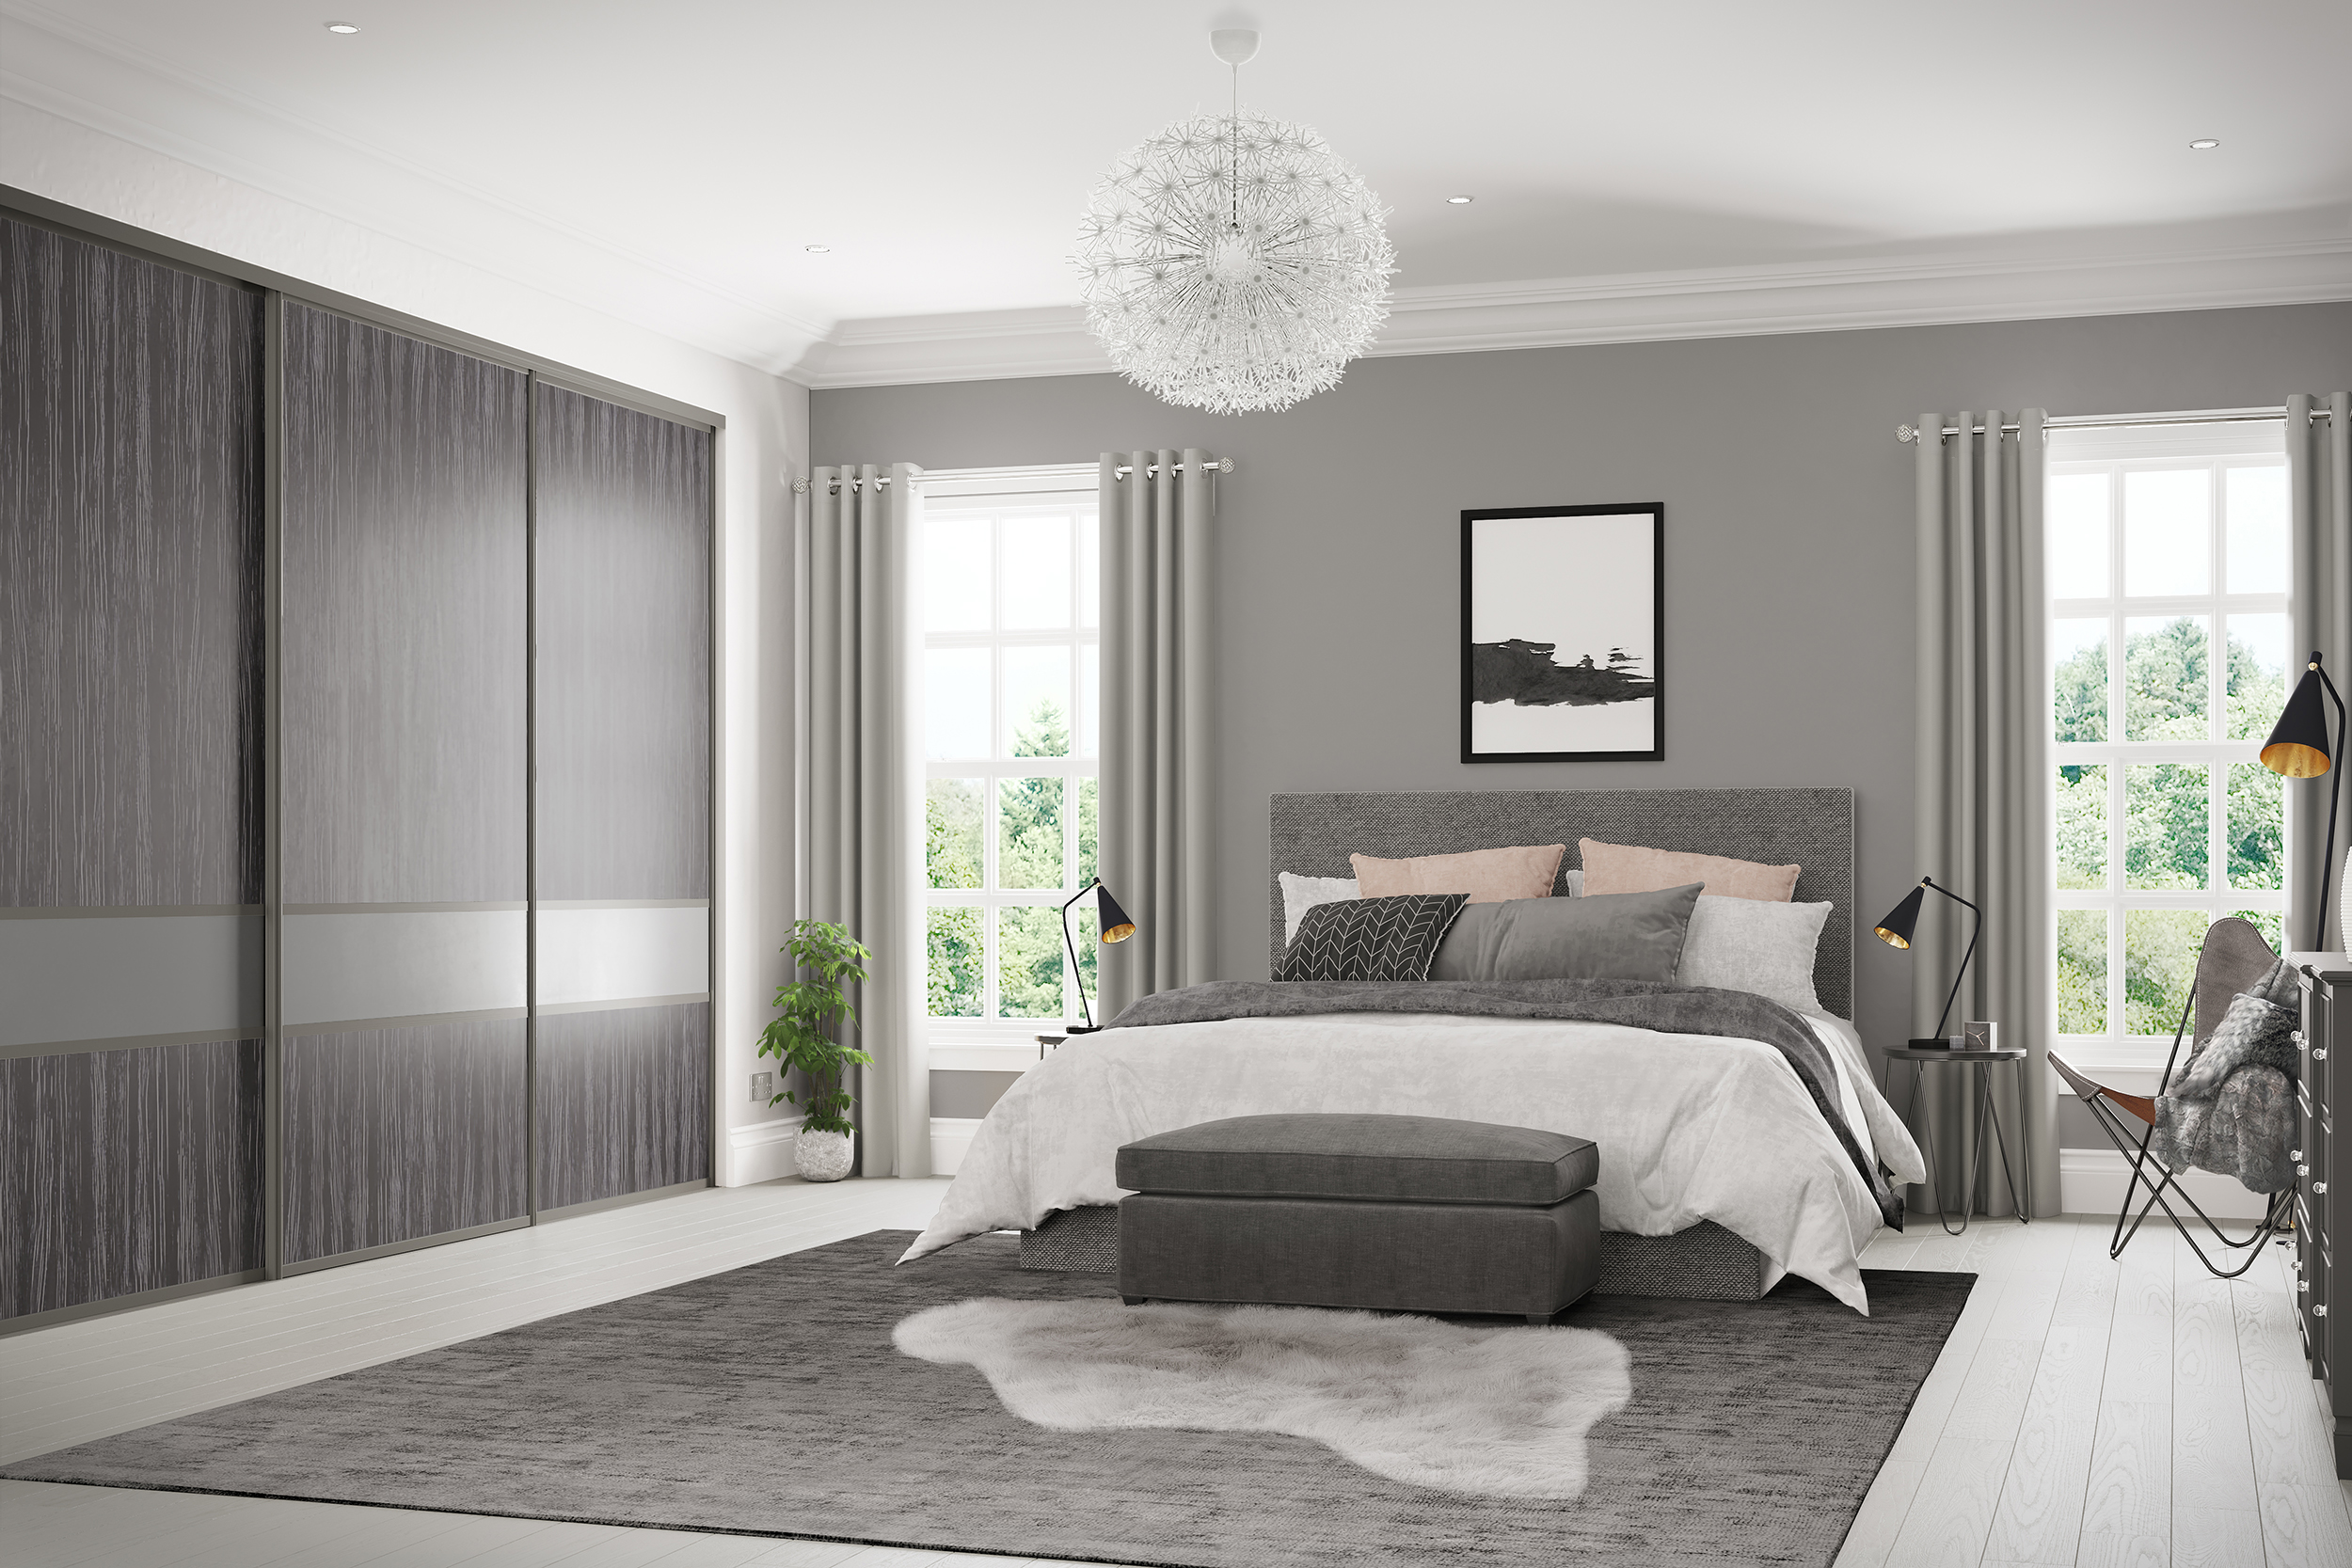 Creating stunning sliding wardrobe storage is our speciality.